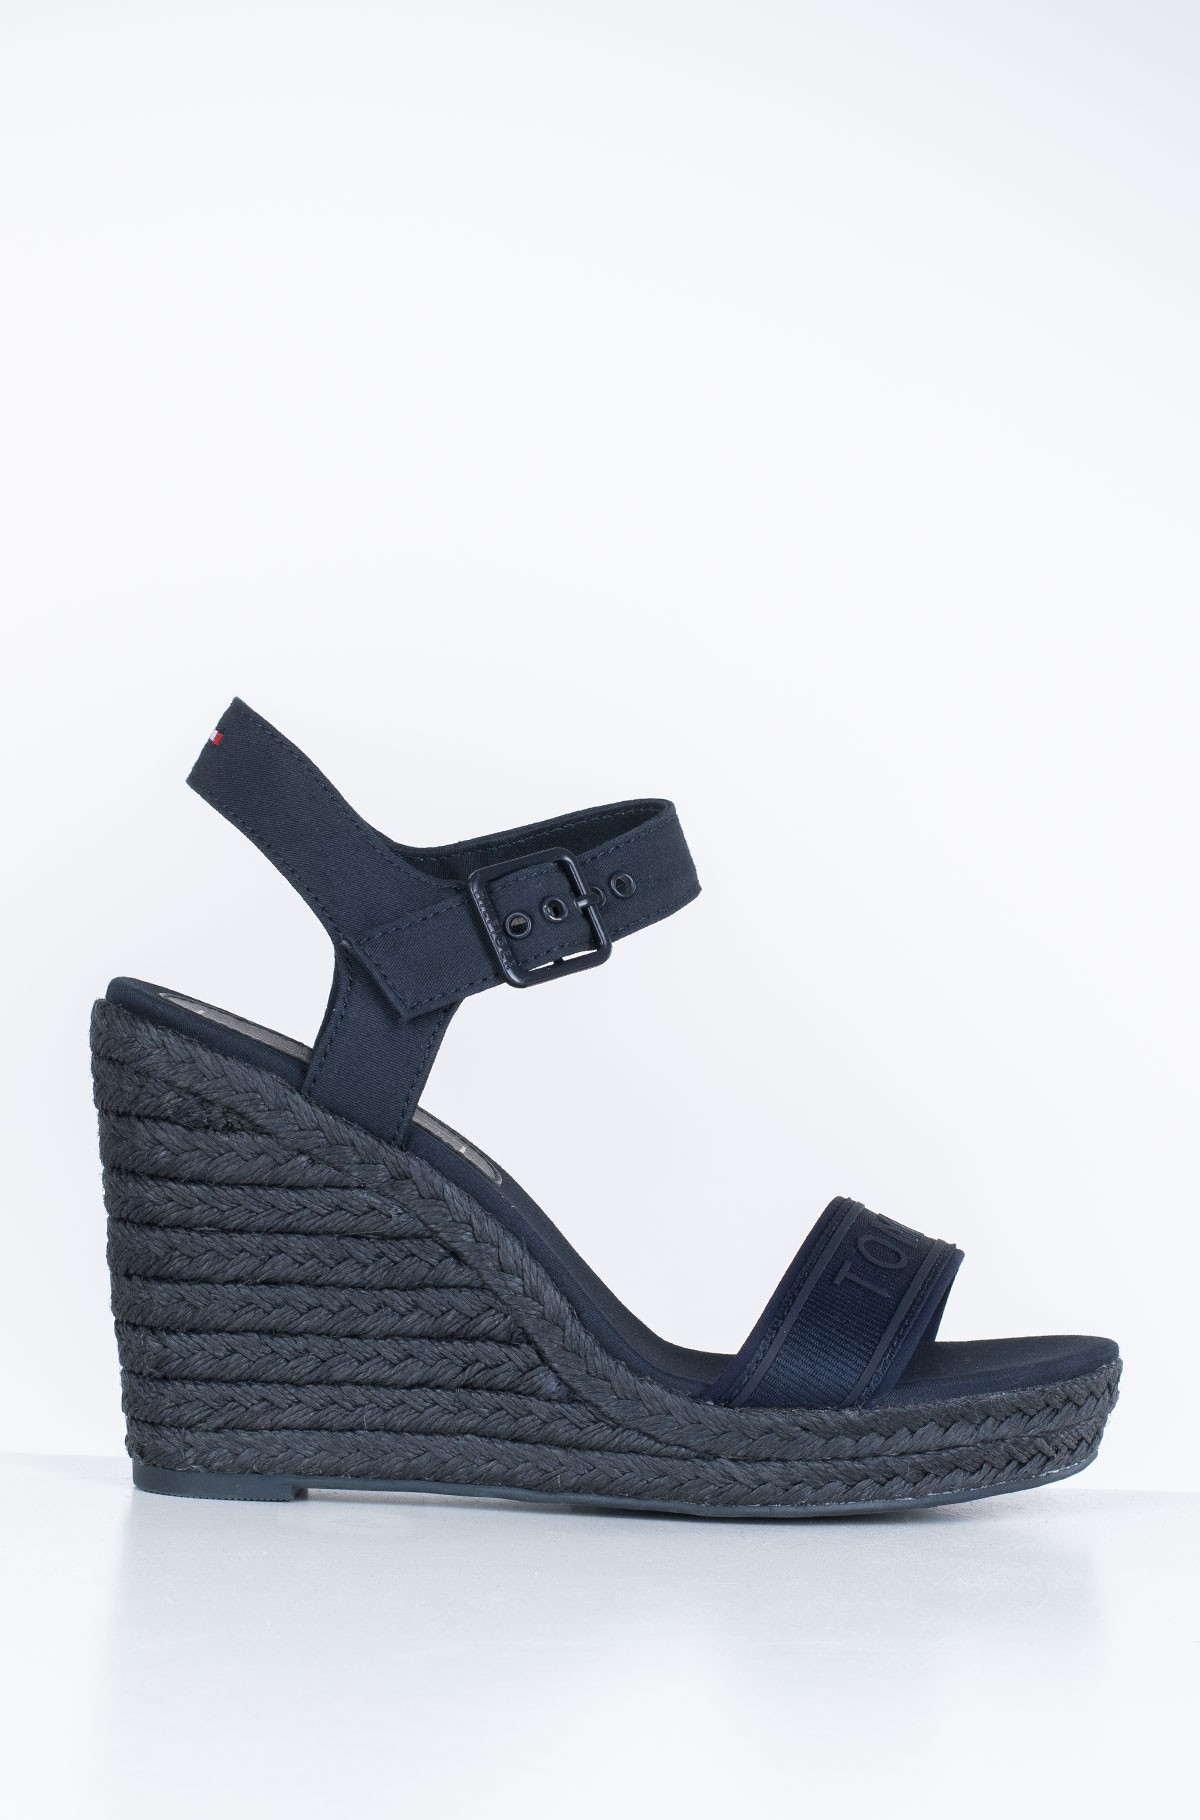 Batai su platforma COLORFUL TOMMY WEDGE SANDAL-full-1